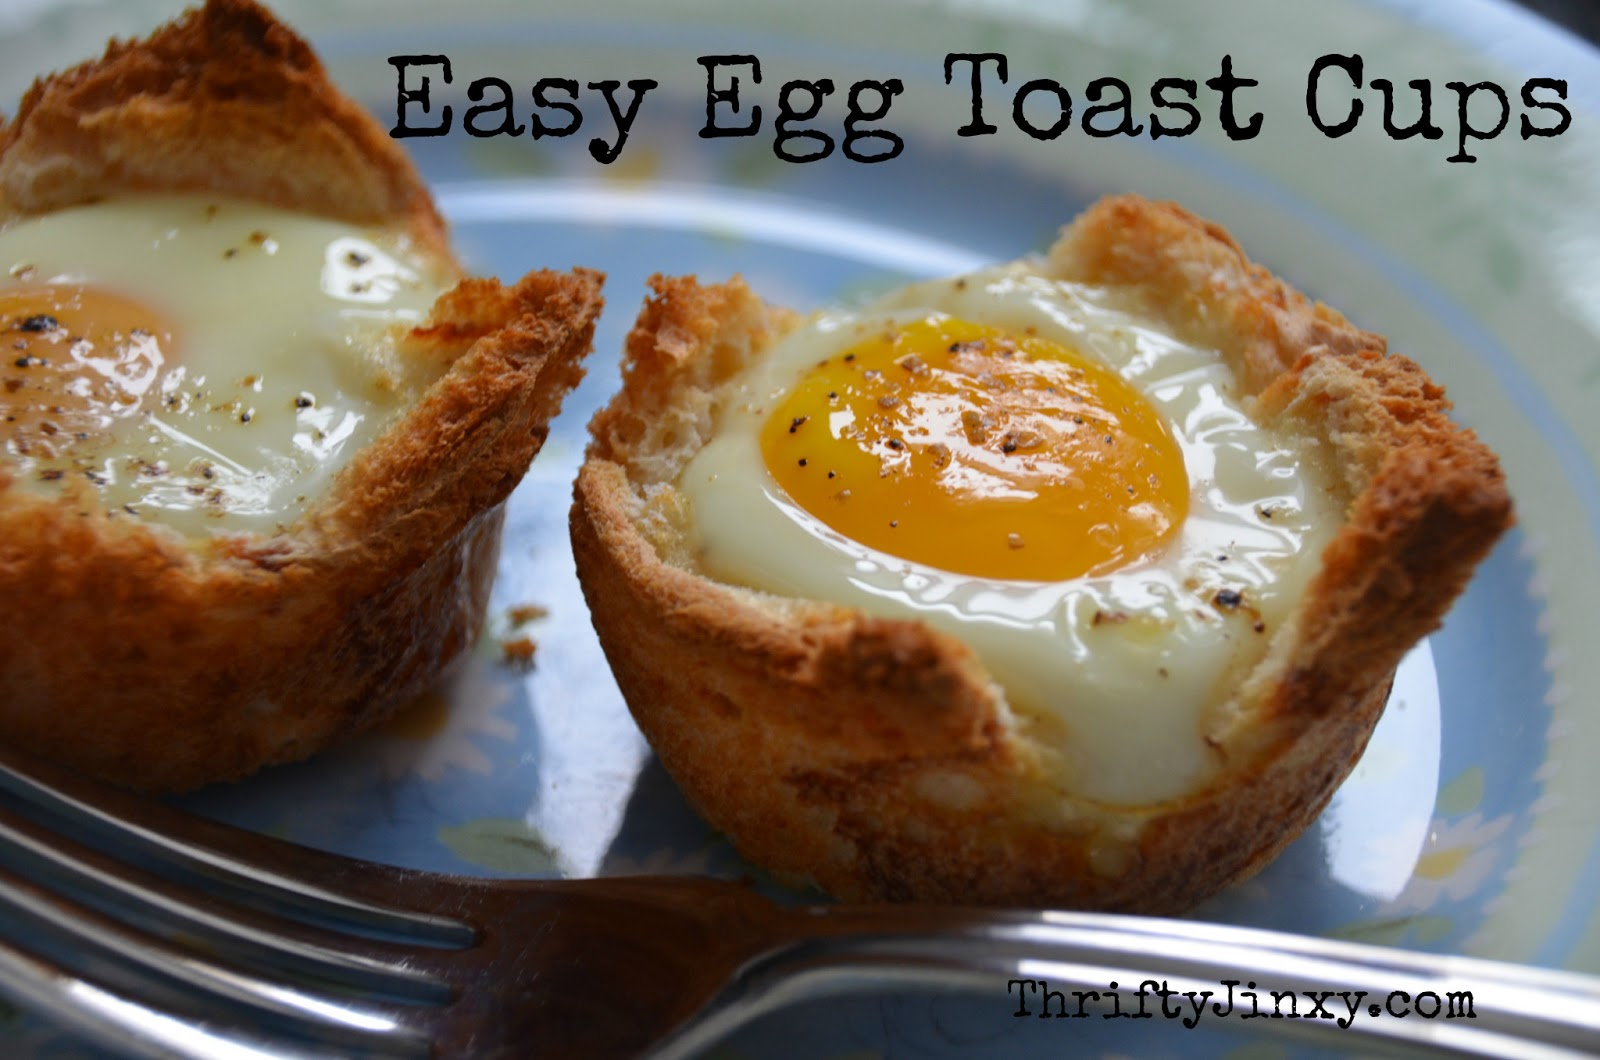 Easy Egg Toast Cups Recipe